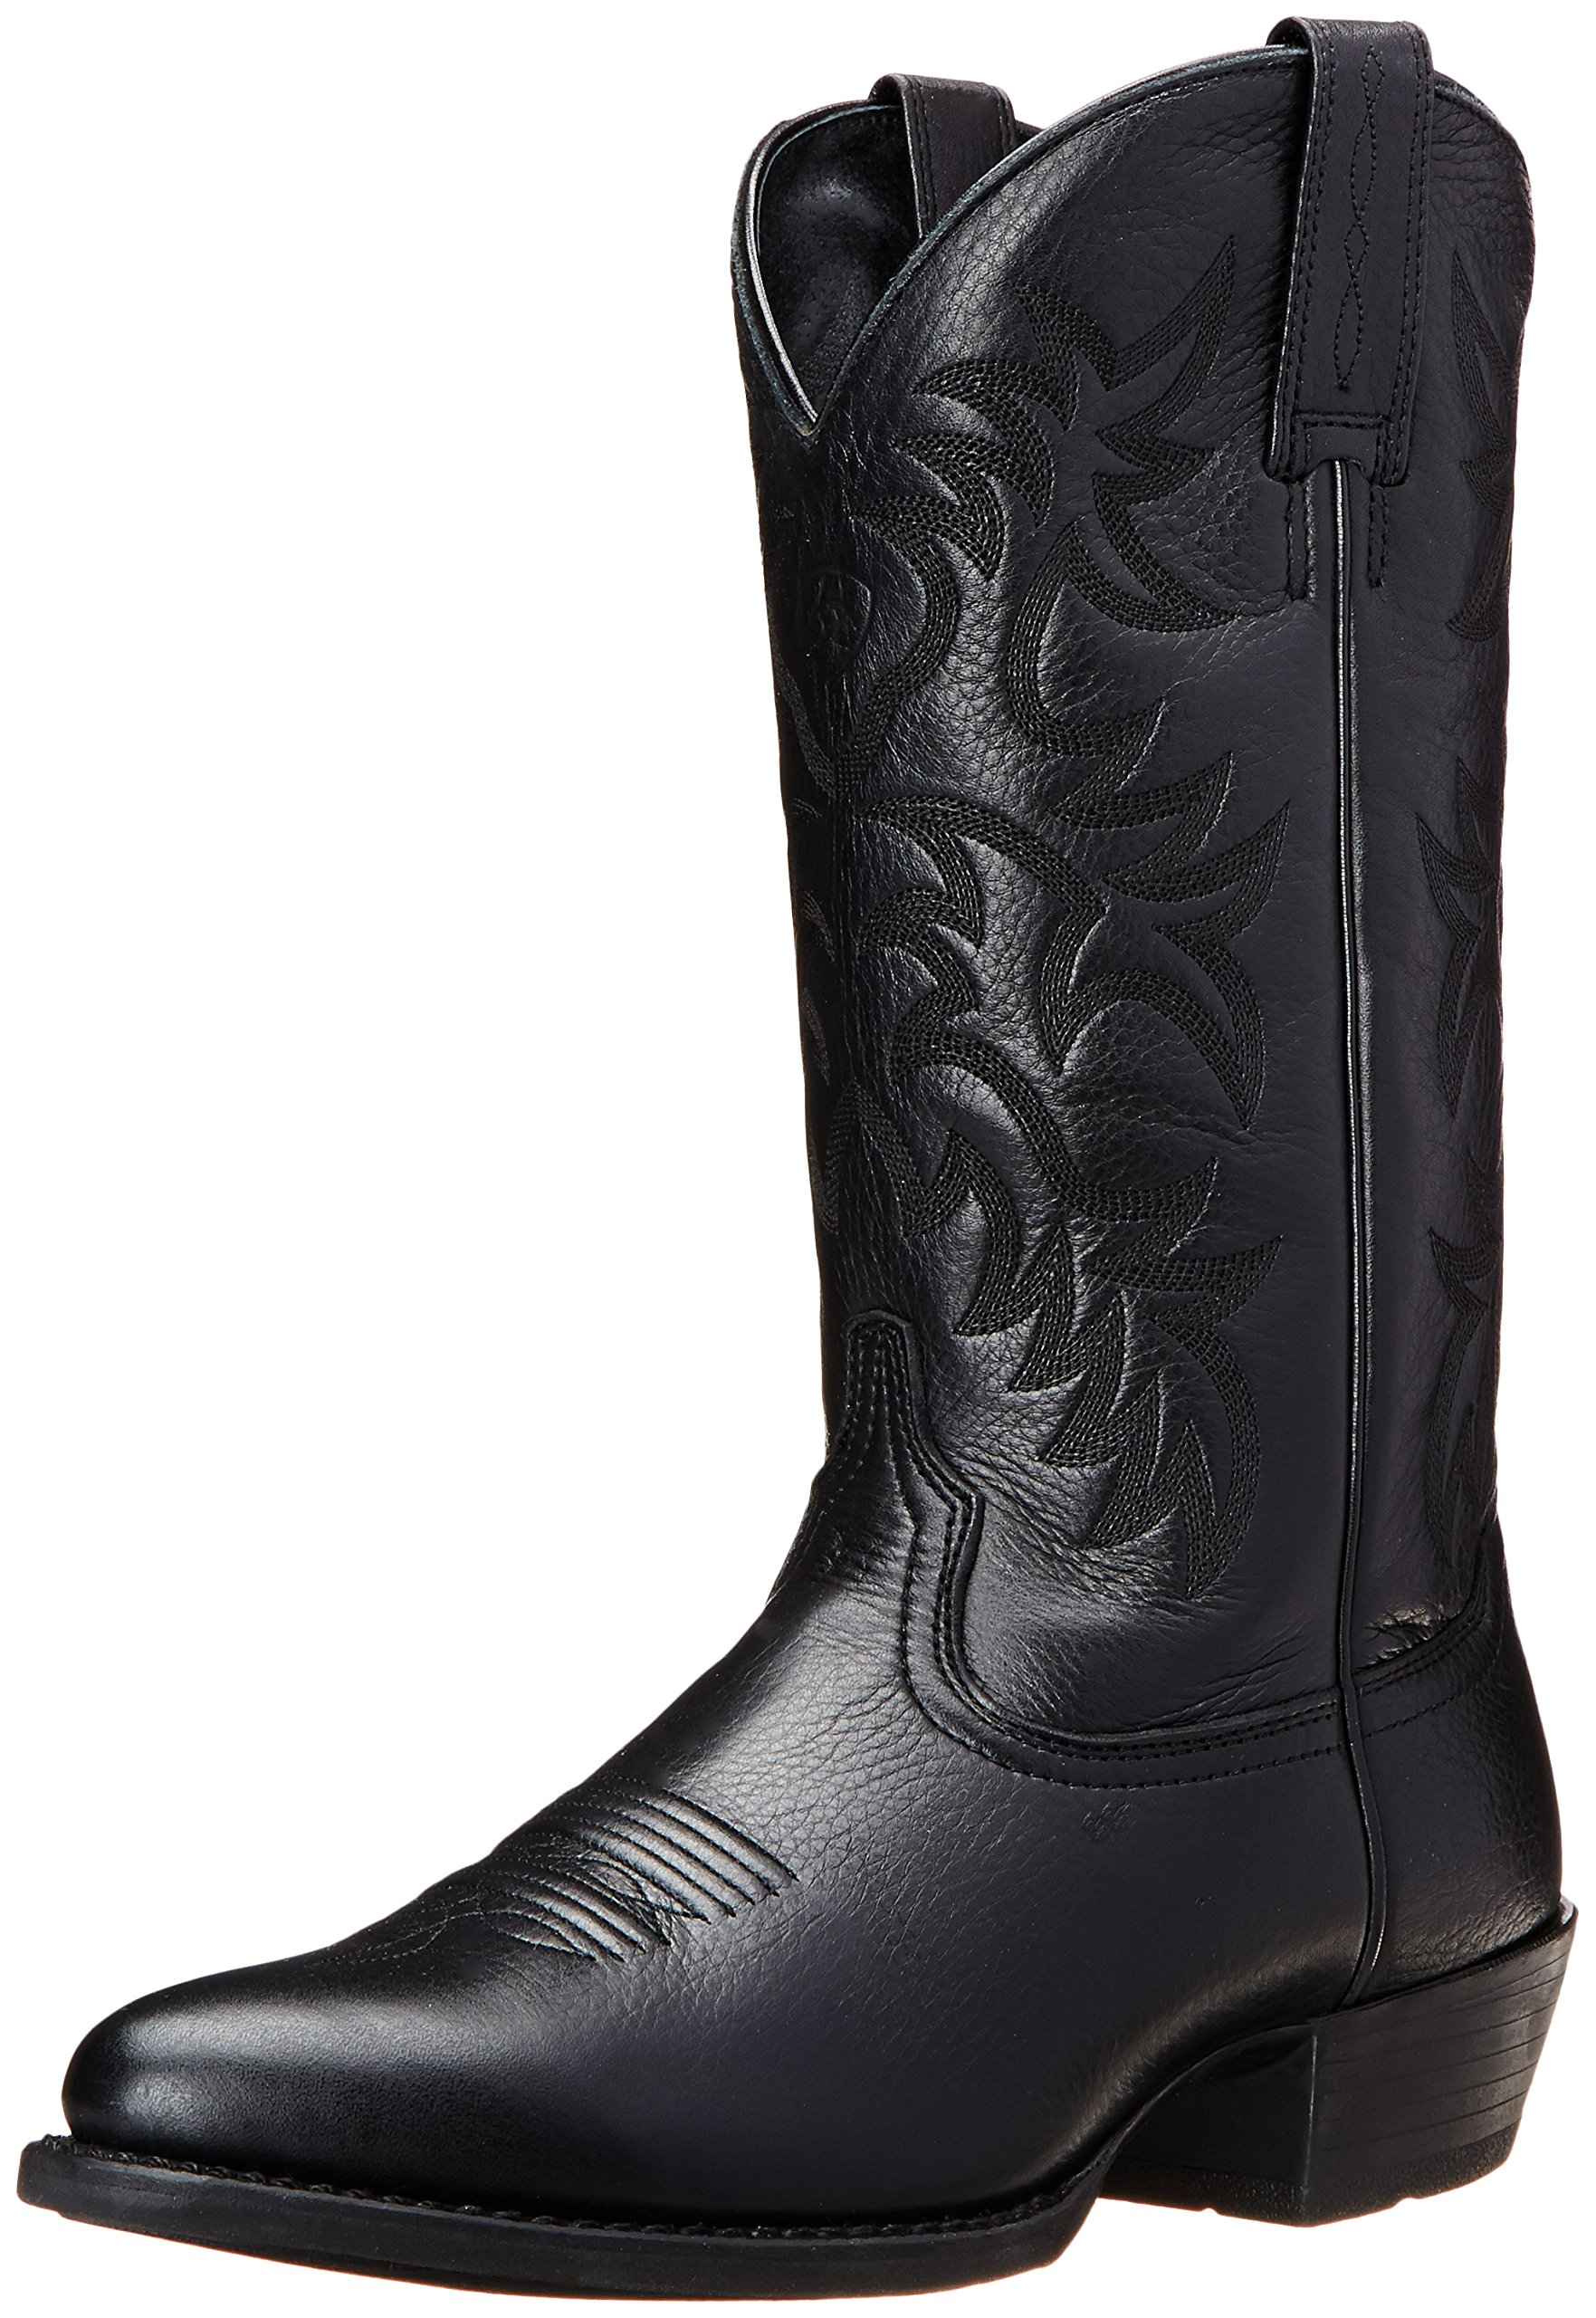 Kids' Clothing, Shoes & Accs Generous Kids Black Solid Leather Cowboy Boots Pointed Toe Youth Western Wear J Toe Be Novel In Design